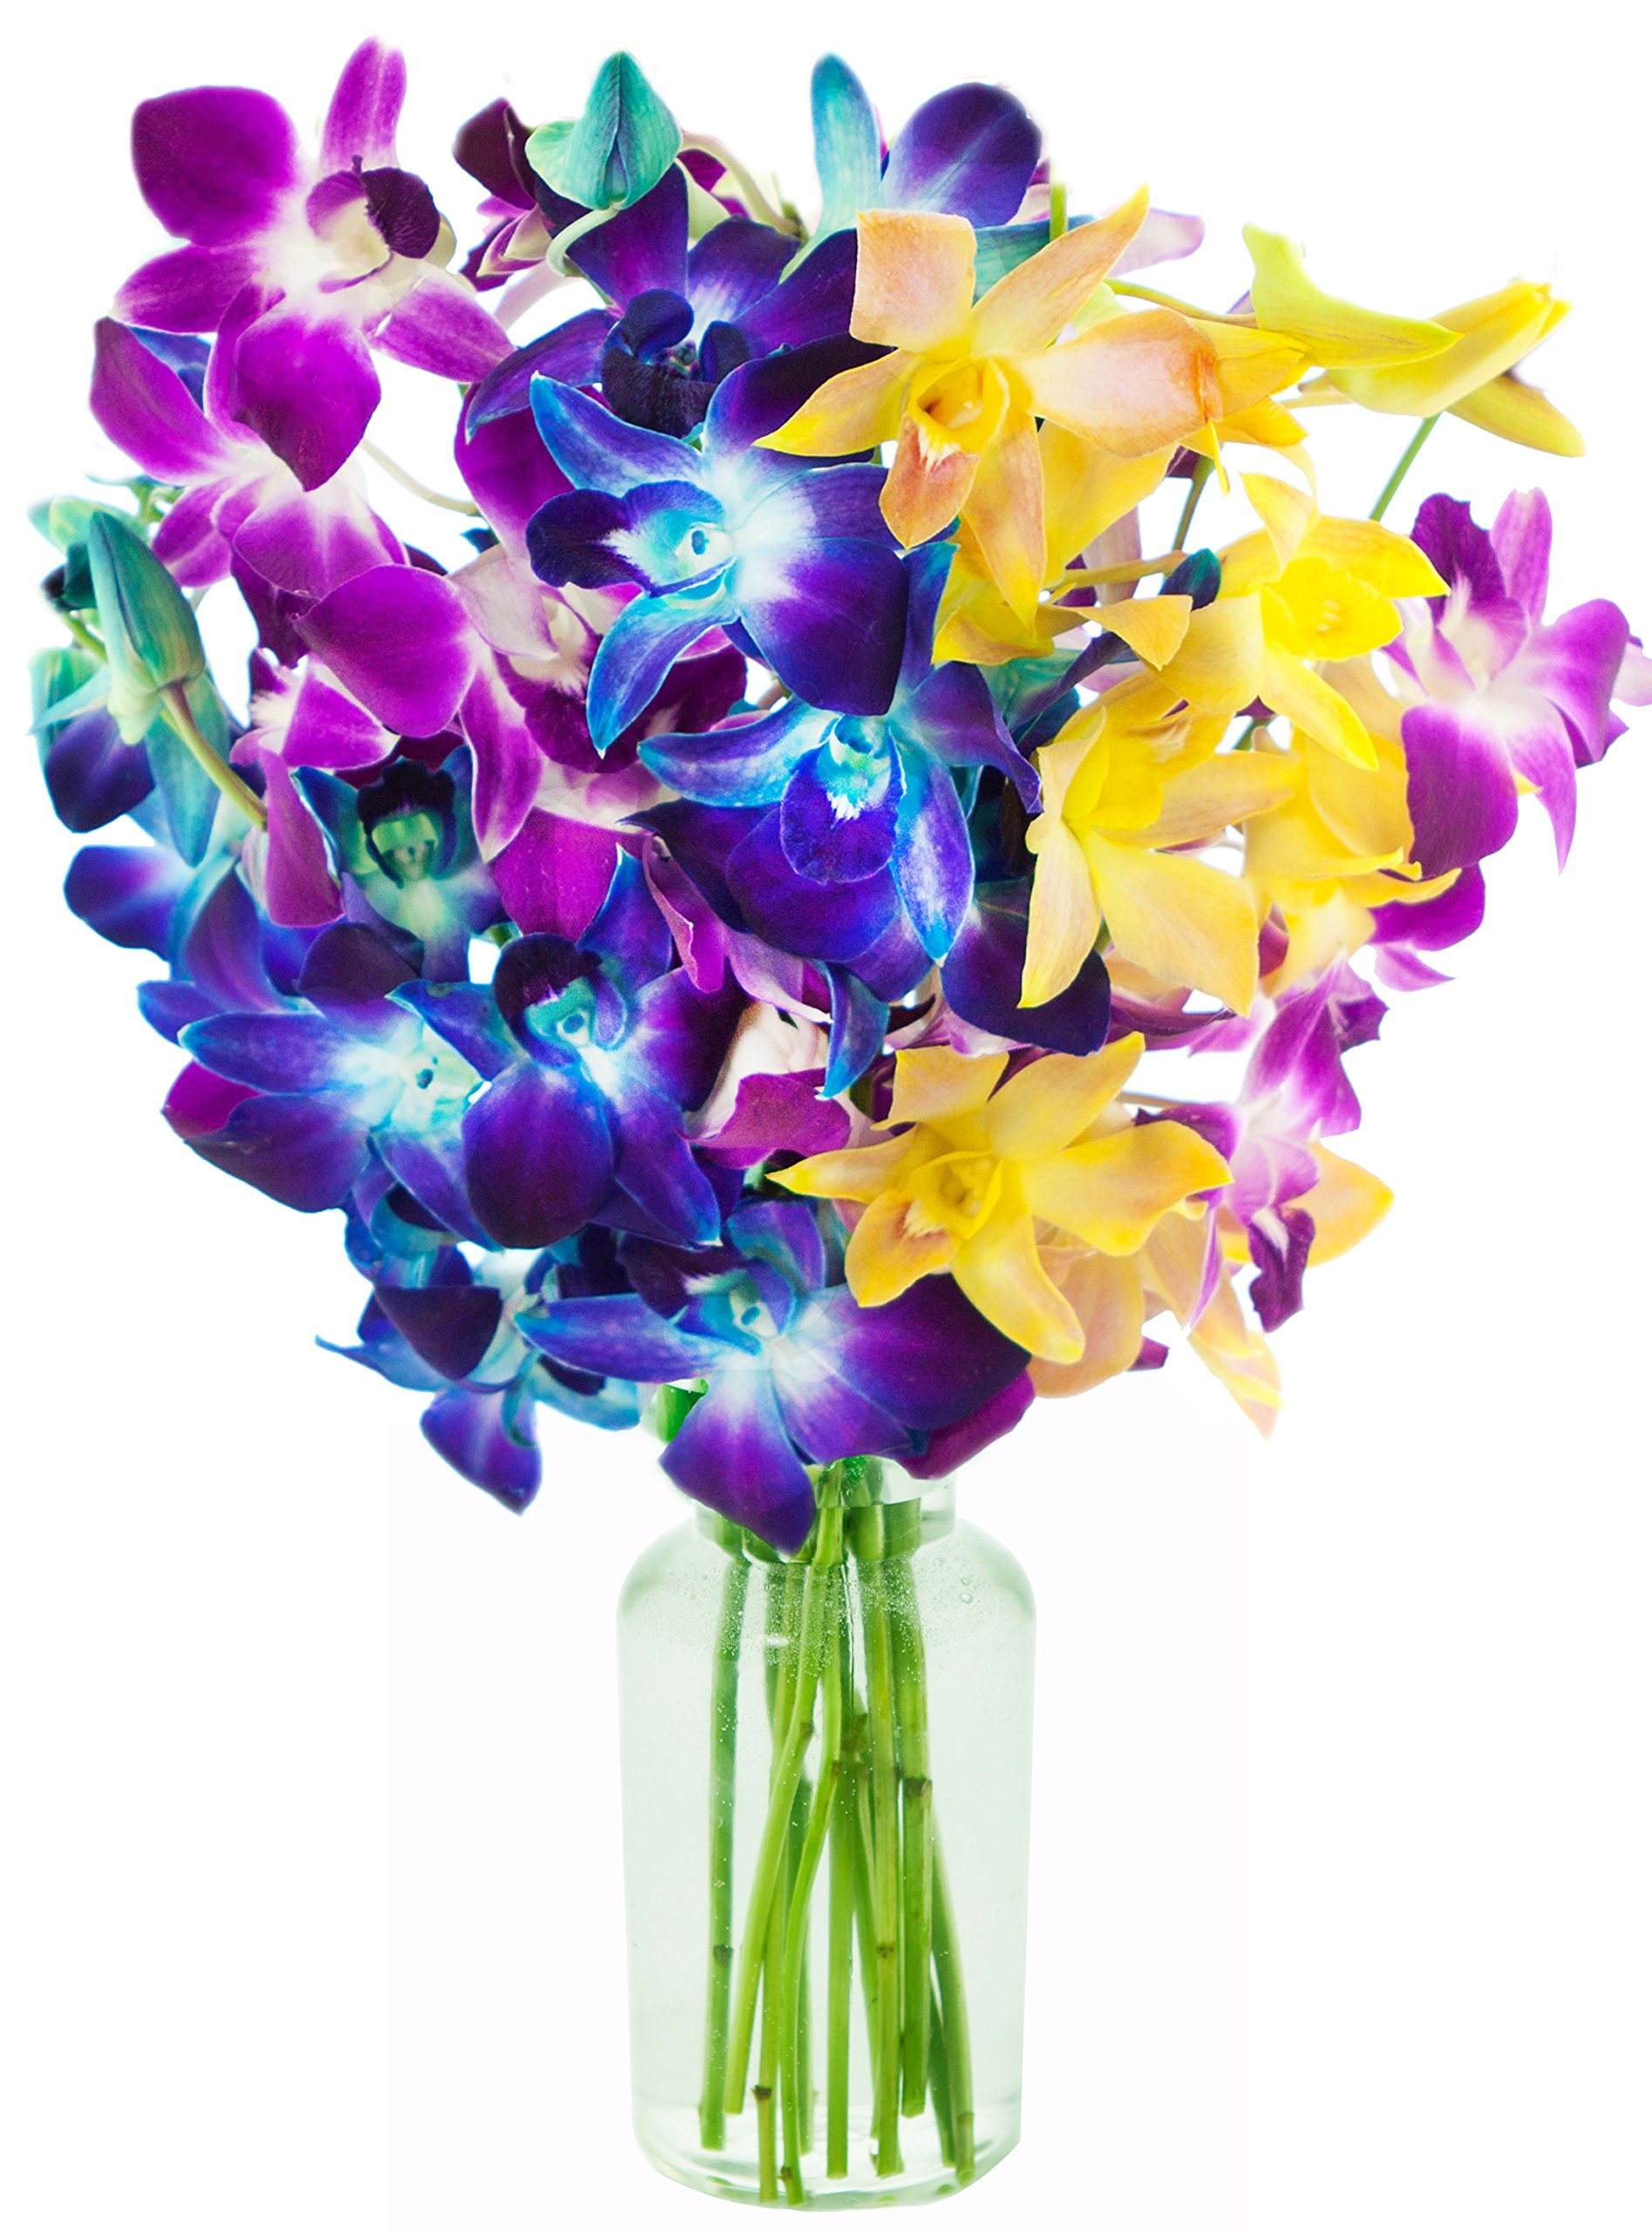 Exotic Rainbow Orchid Bouquet of 5 Blue Dendrobium Orchids, 3 Purple Dendrobium Orchids, and 2 Yellow Dendrobium Orchids from Thailand with Free Vase Included by KaBloom